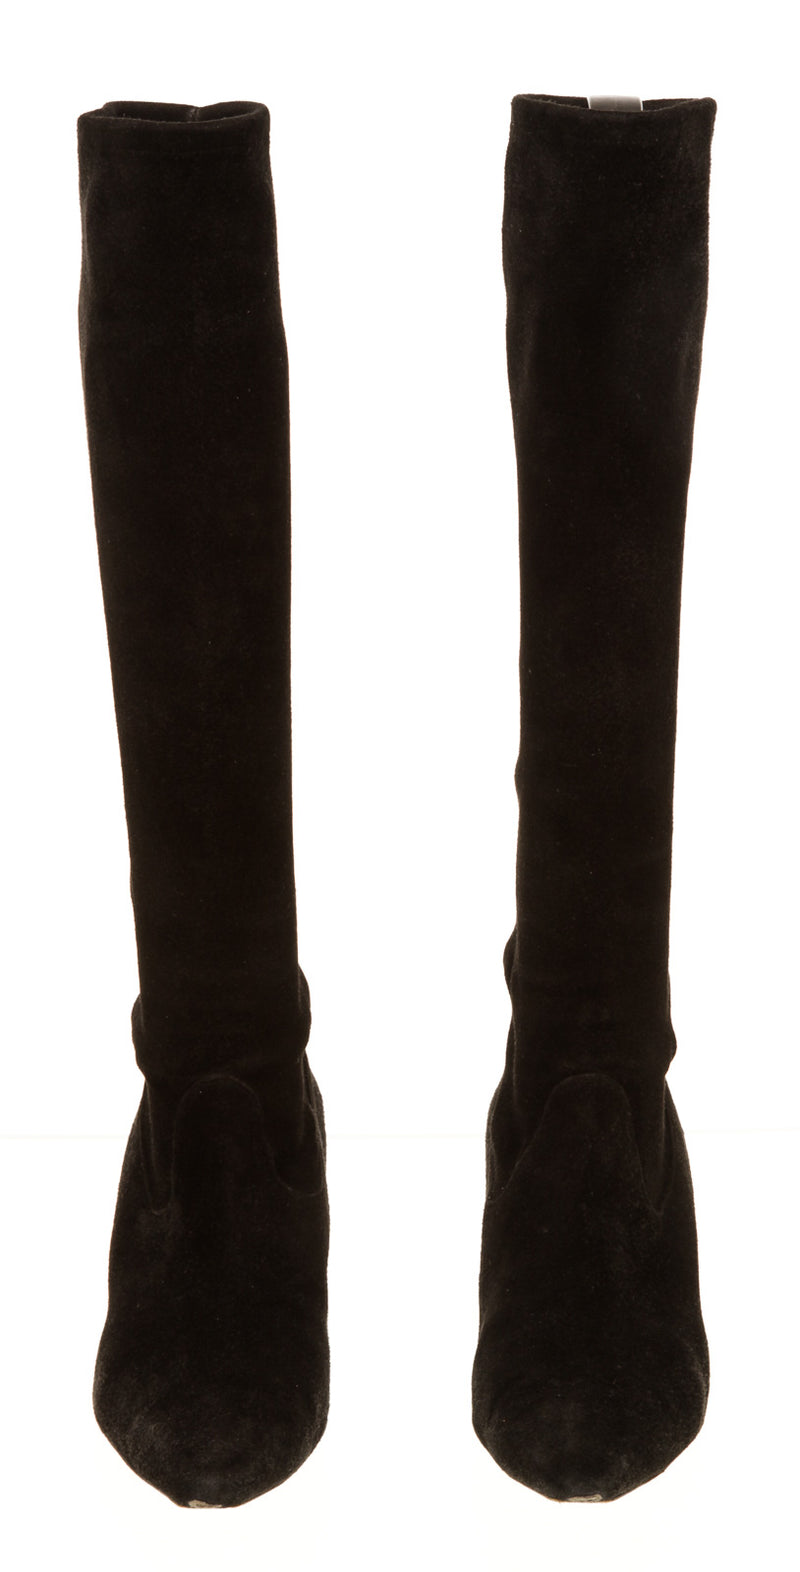 Manolo Blahnik Black Suede Pointed Boots(39)